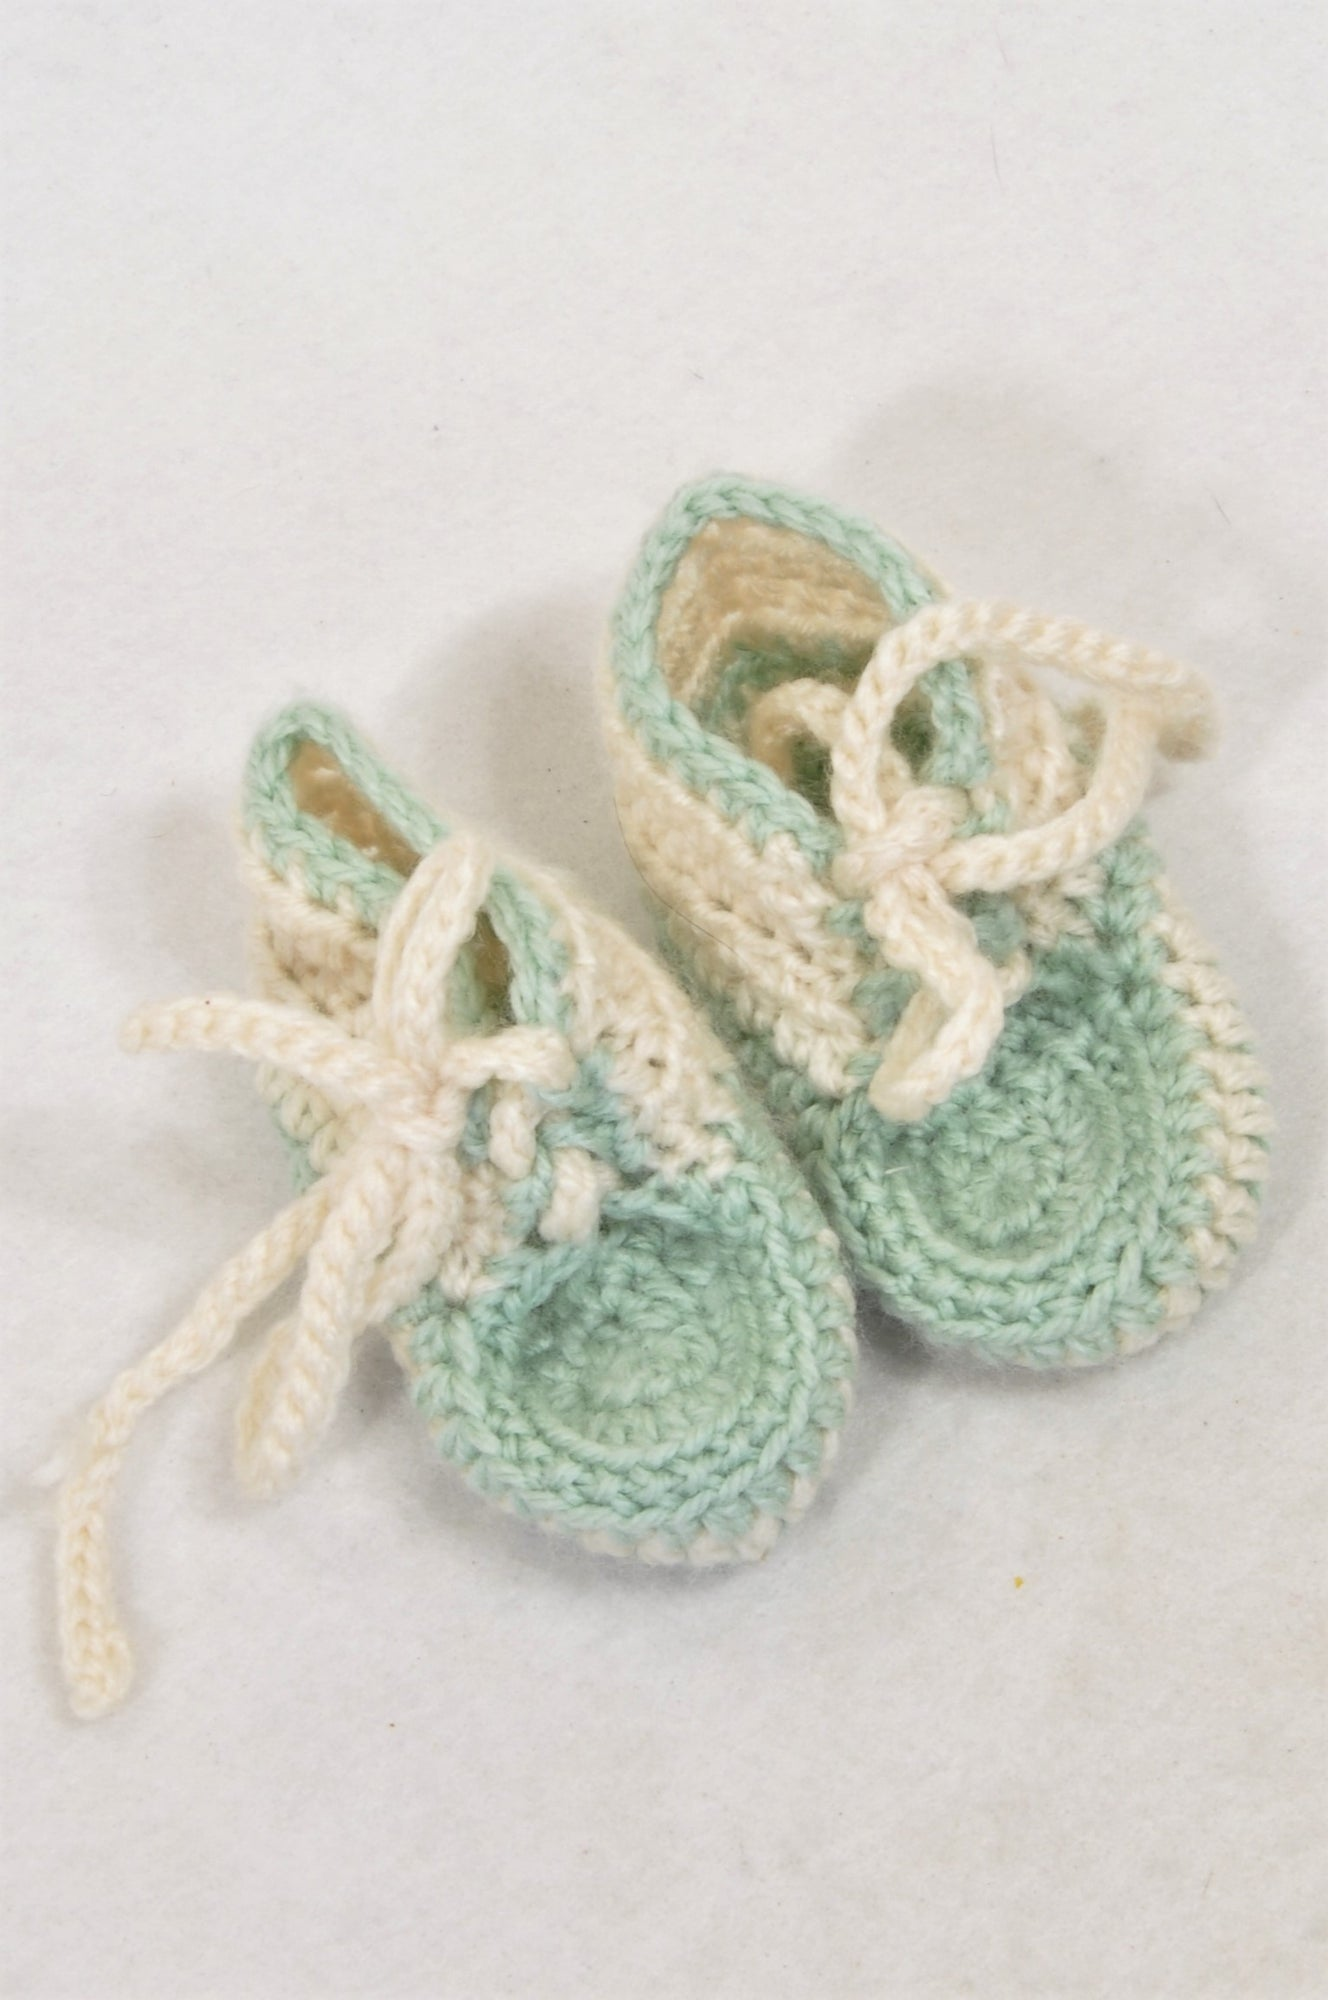 Unbranded Size 1 Duck Egg & Cream Knit Booties Unisex 3-6 months